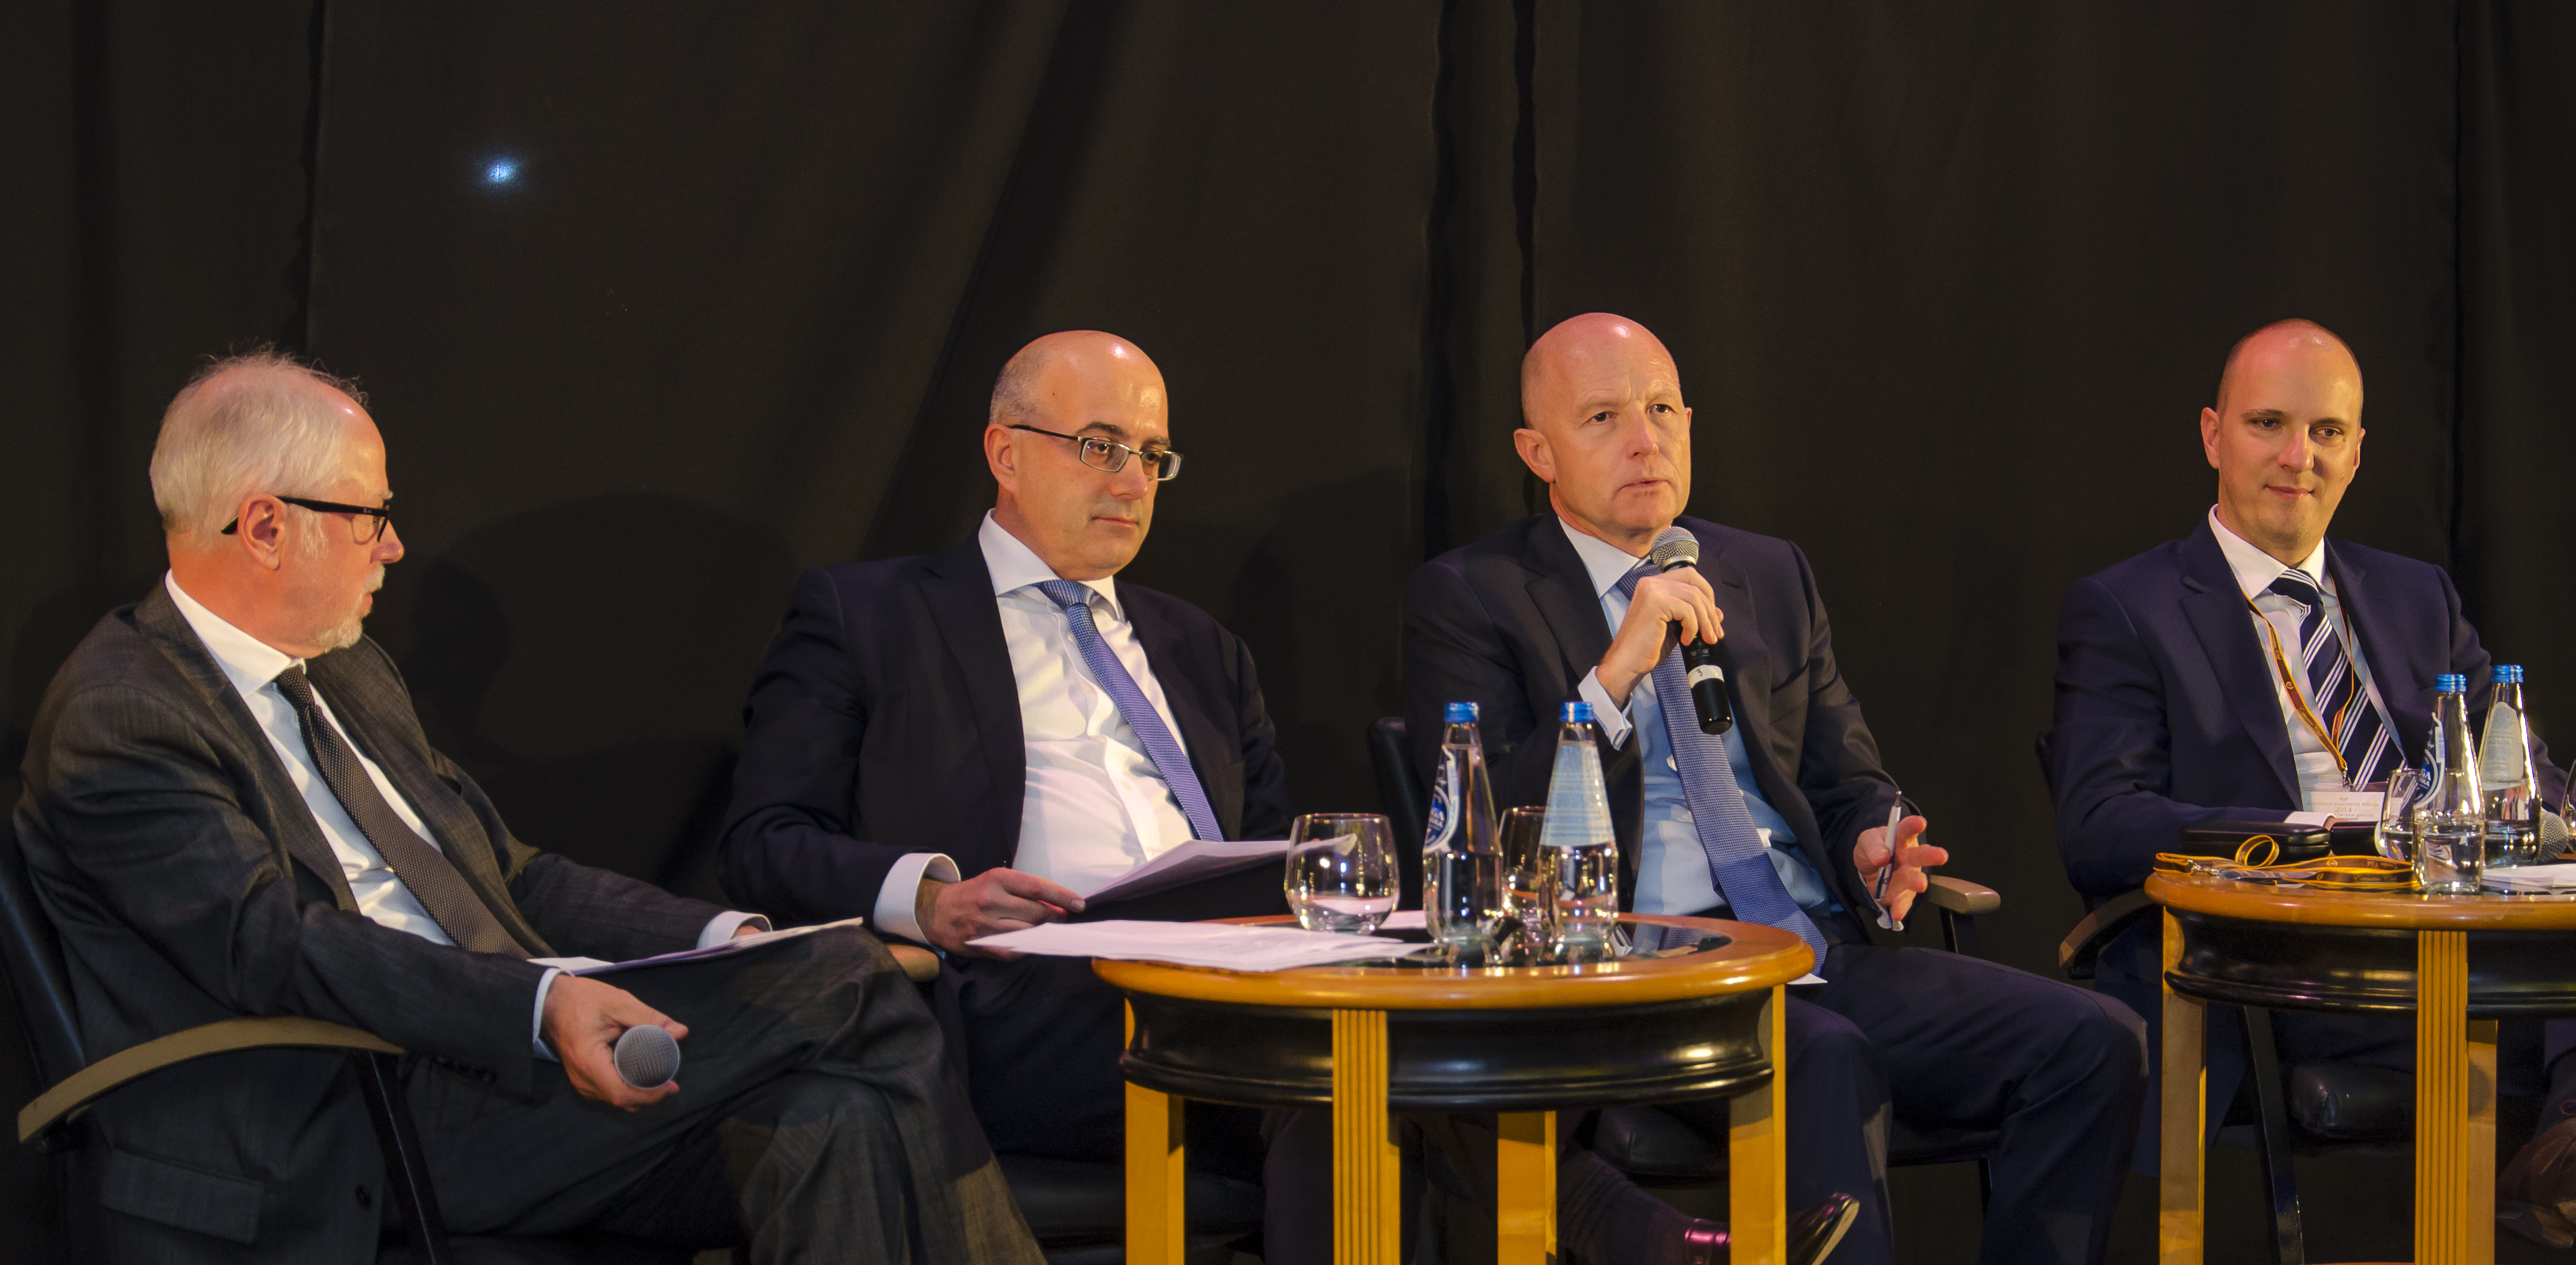 European Executive Forum 2014 - Further expansion of Polish comapnies into foreign markets